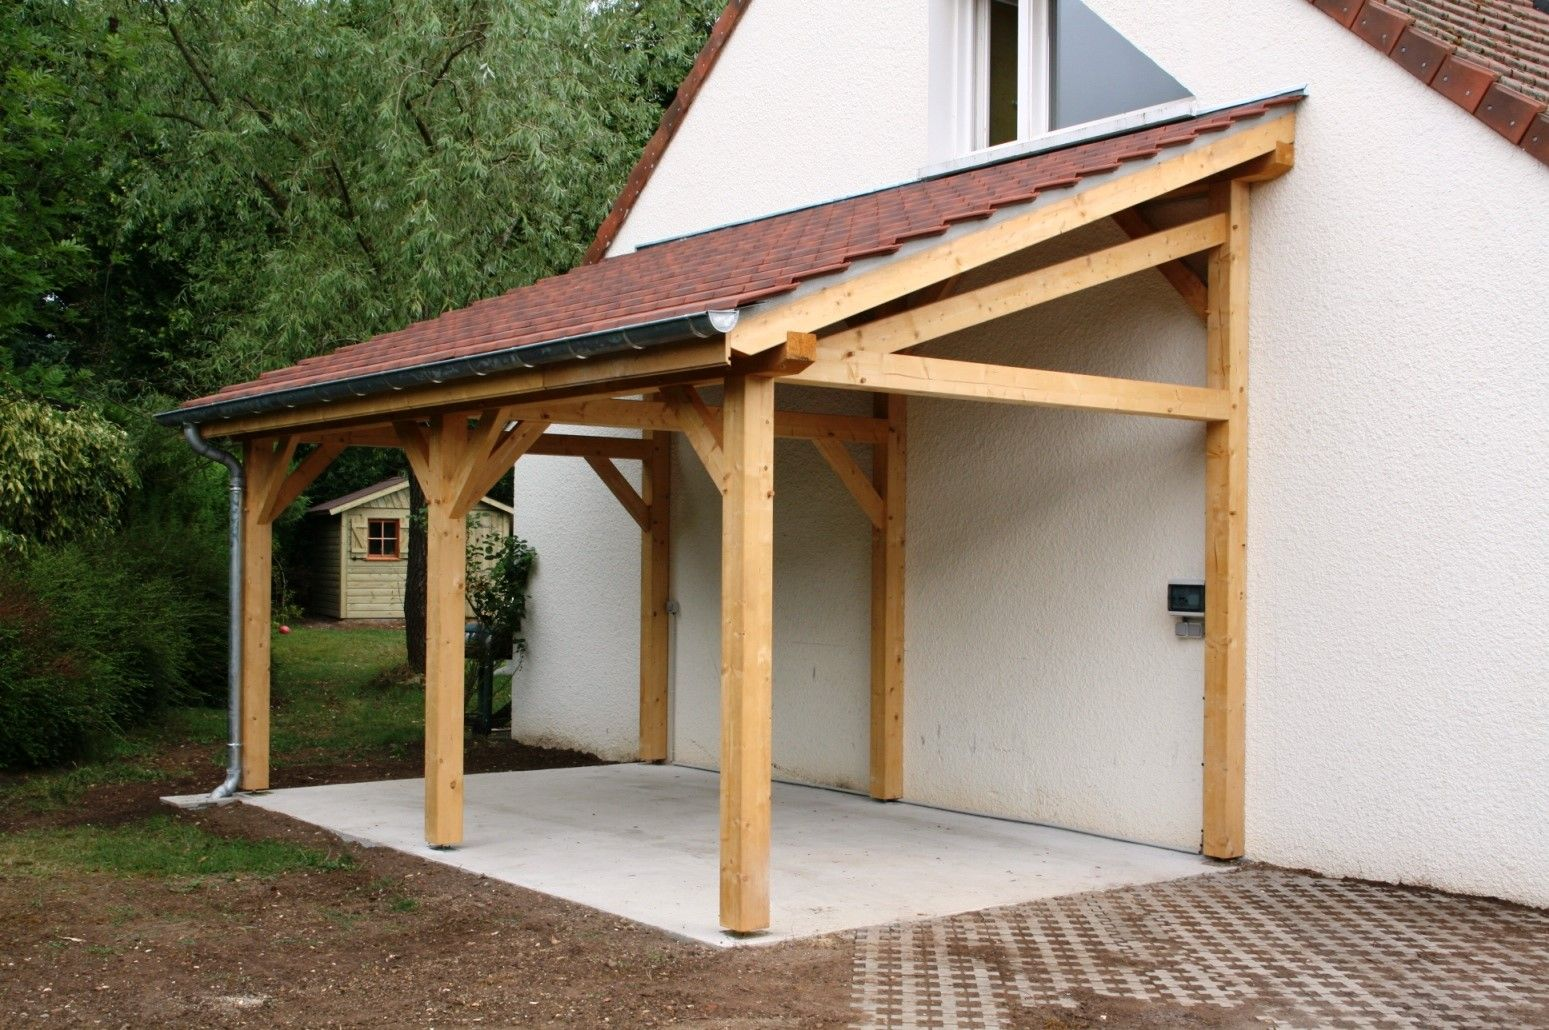 Shed Plans Garage 1 Pente 2 70mx7 00m Cerisier Abris De Jardin En Bois Now You Can Build Any Shed In A Weekend Even Building A Shed Pergola Shed Plans